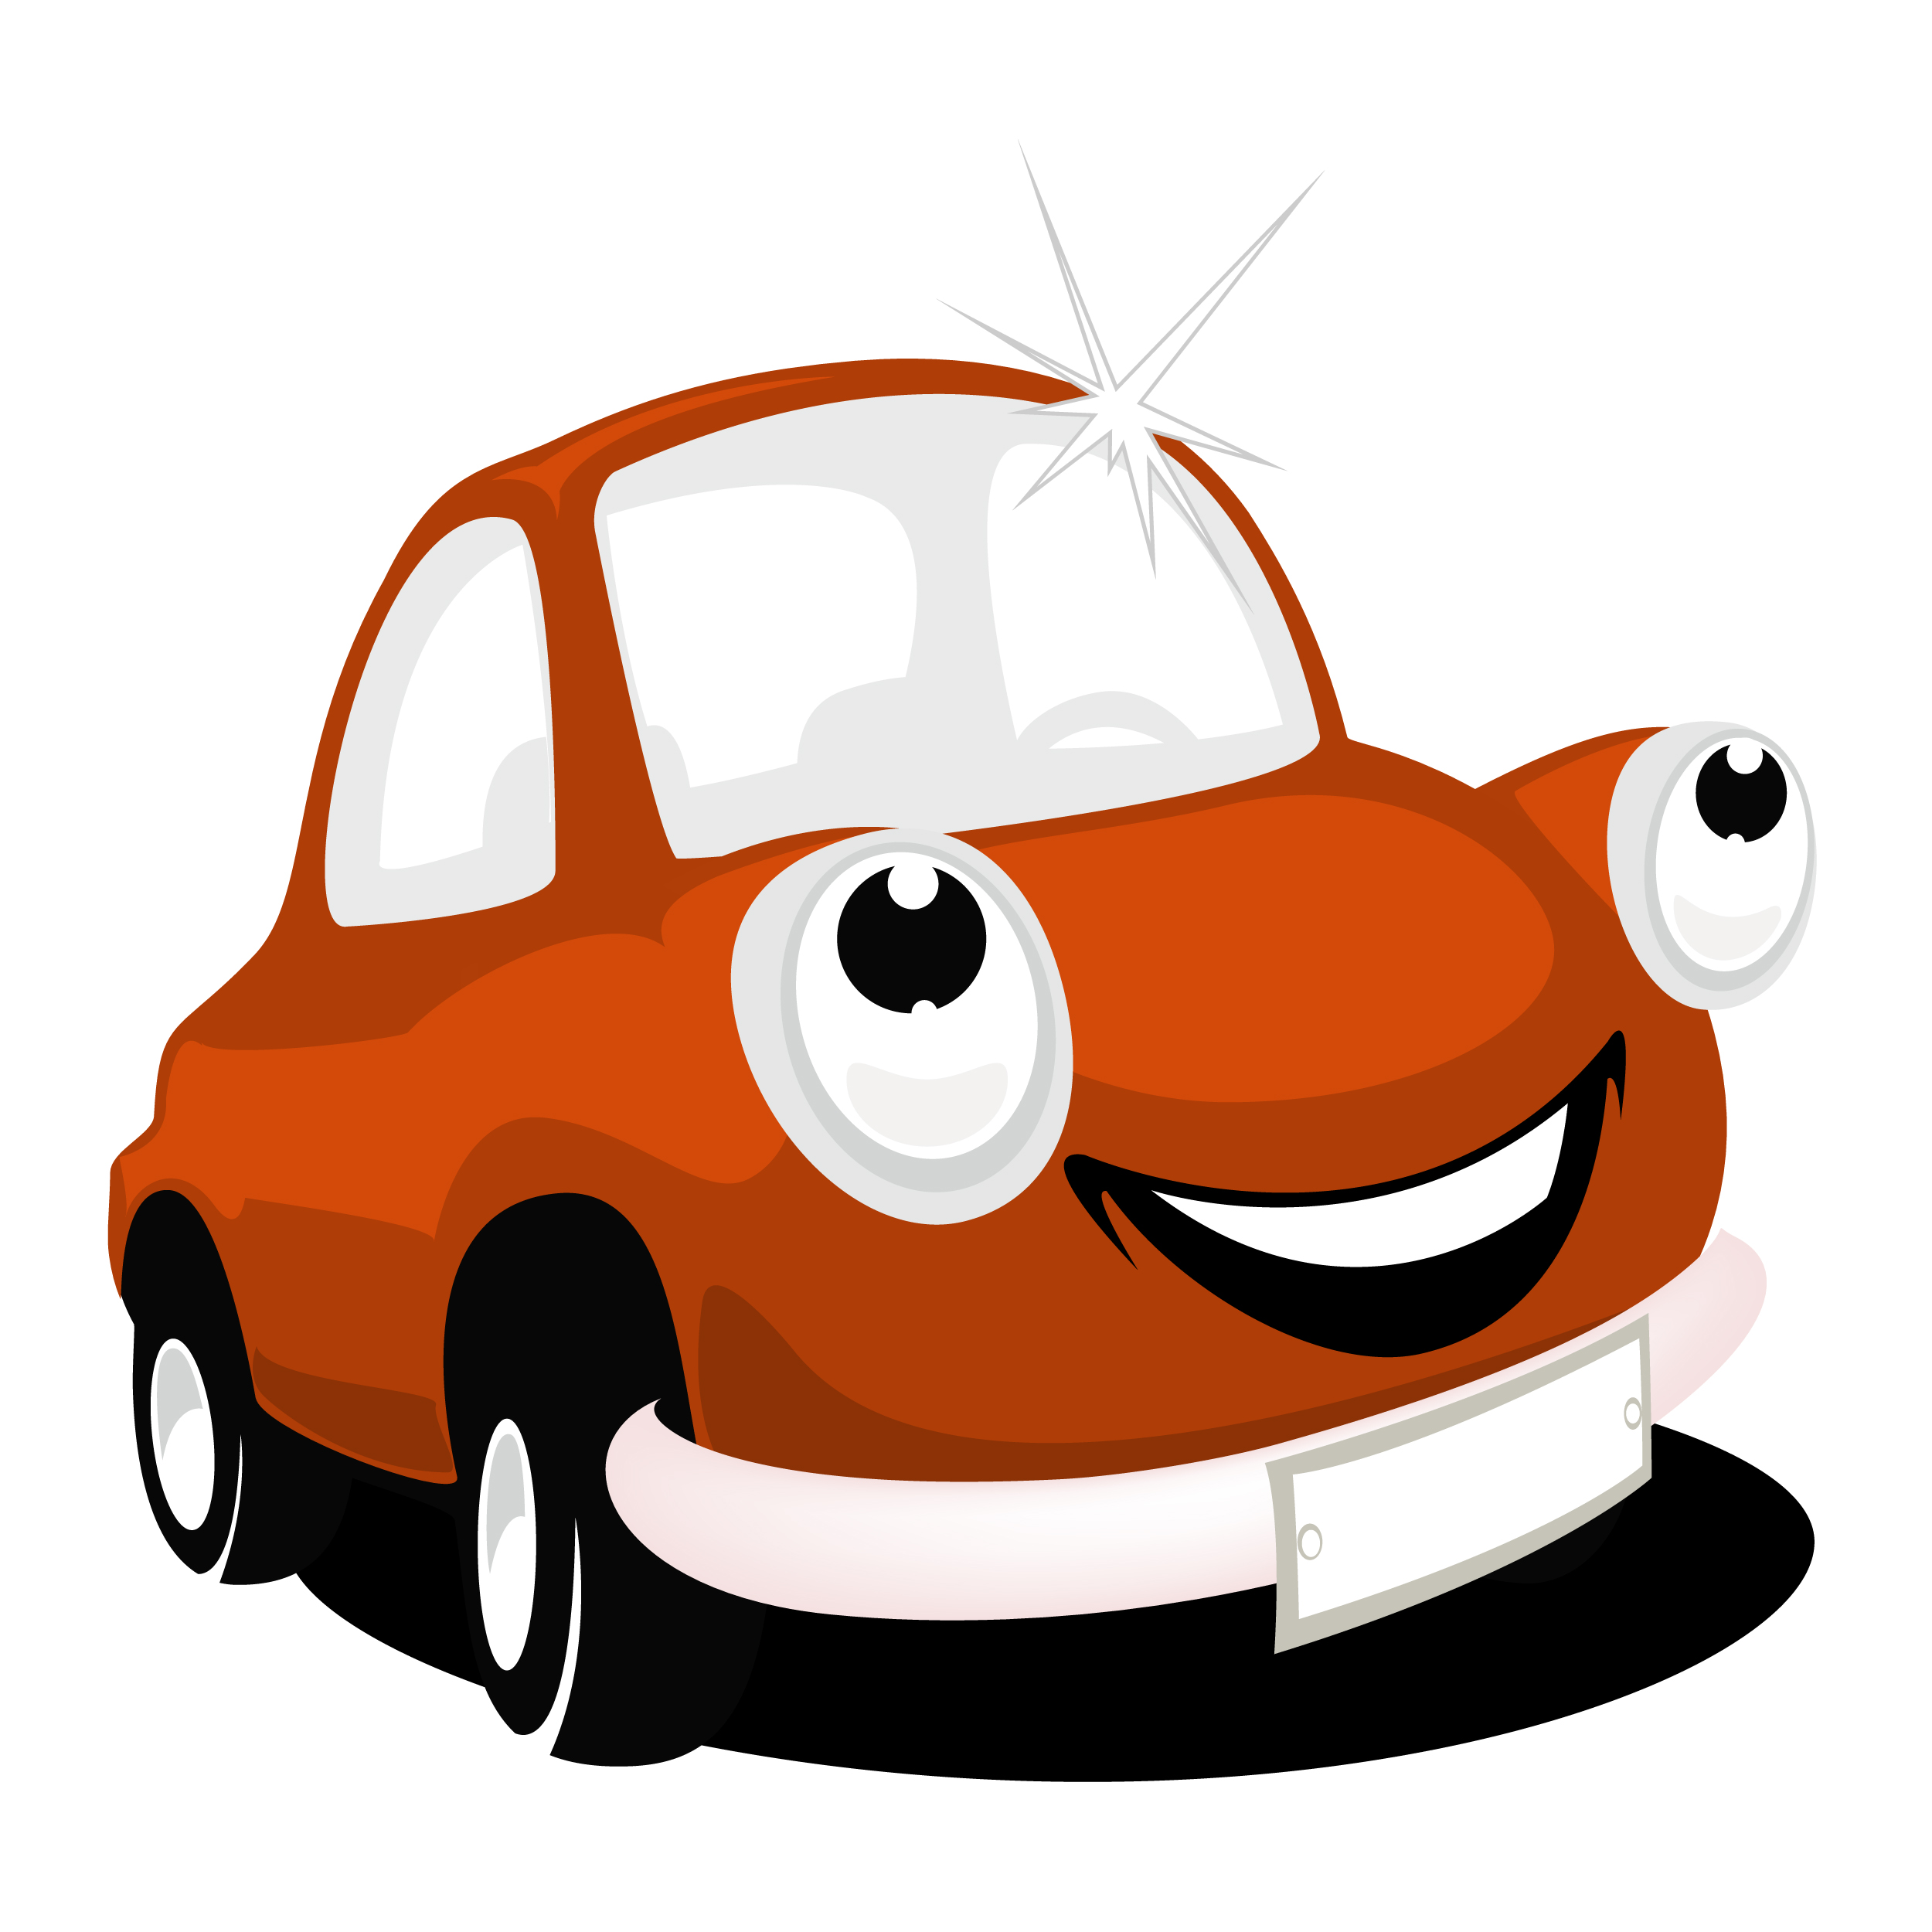 Free Car Cartoon Images, Download Free Clip Art, Free Clip Art on.